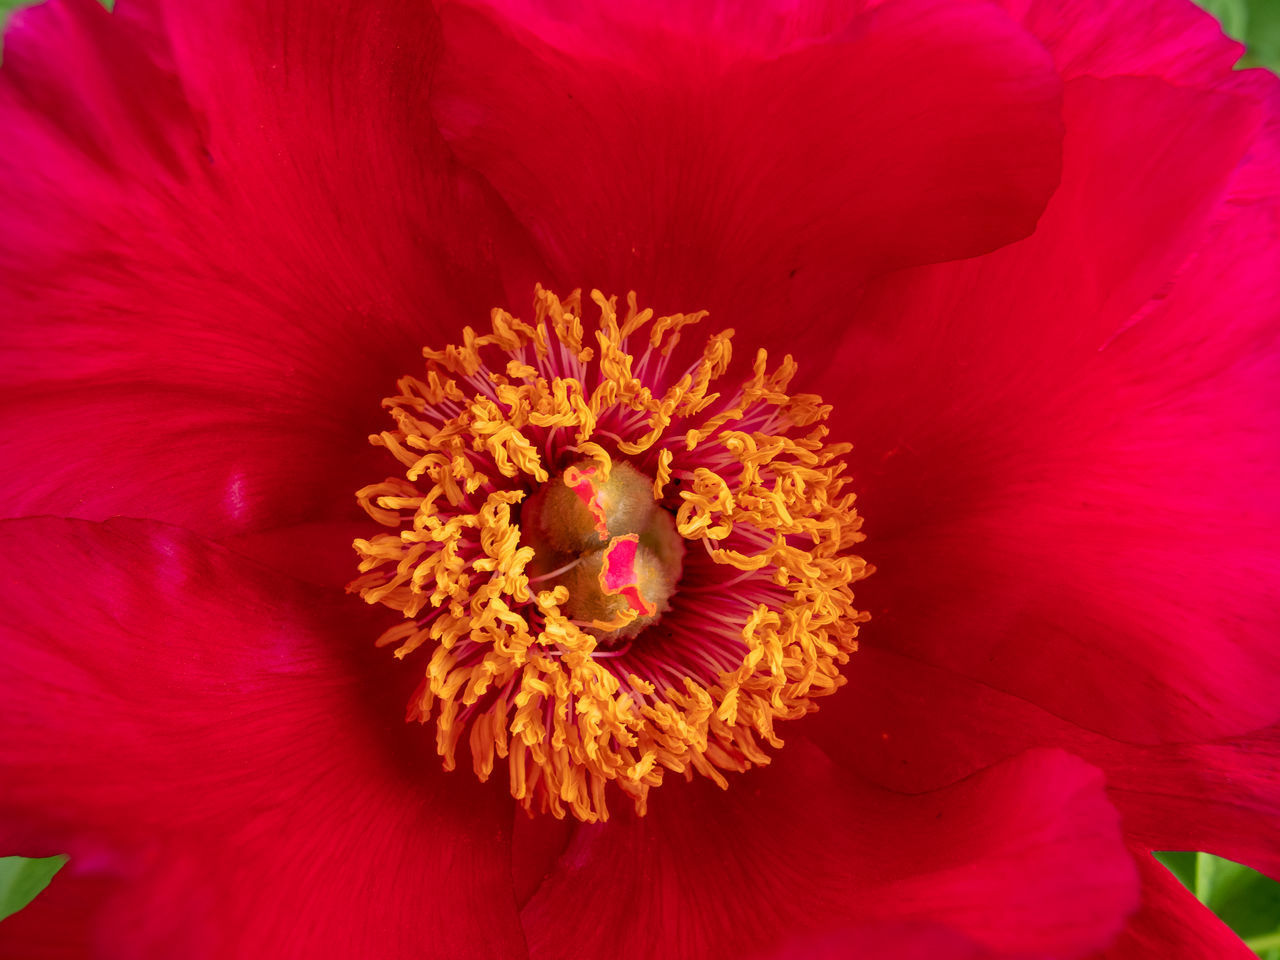 FULL FRAME SHOT OF RED FLOWER